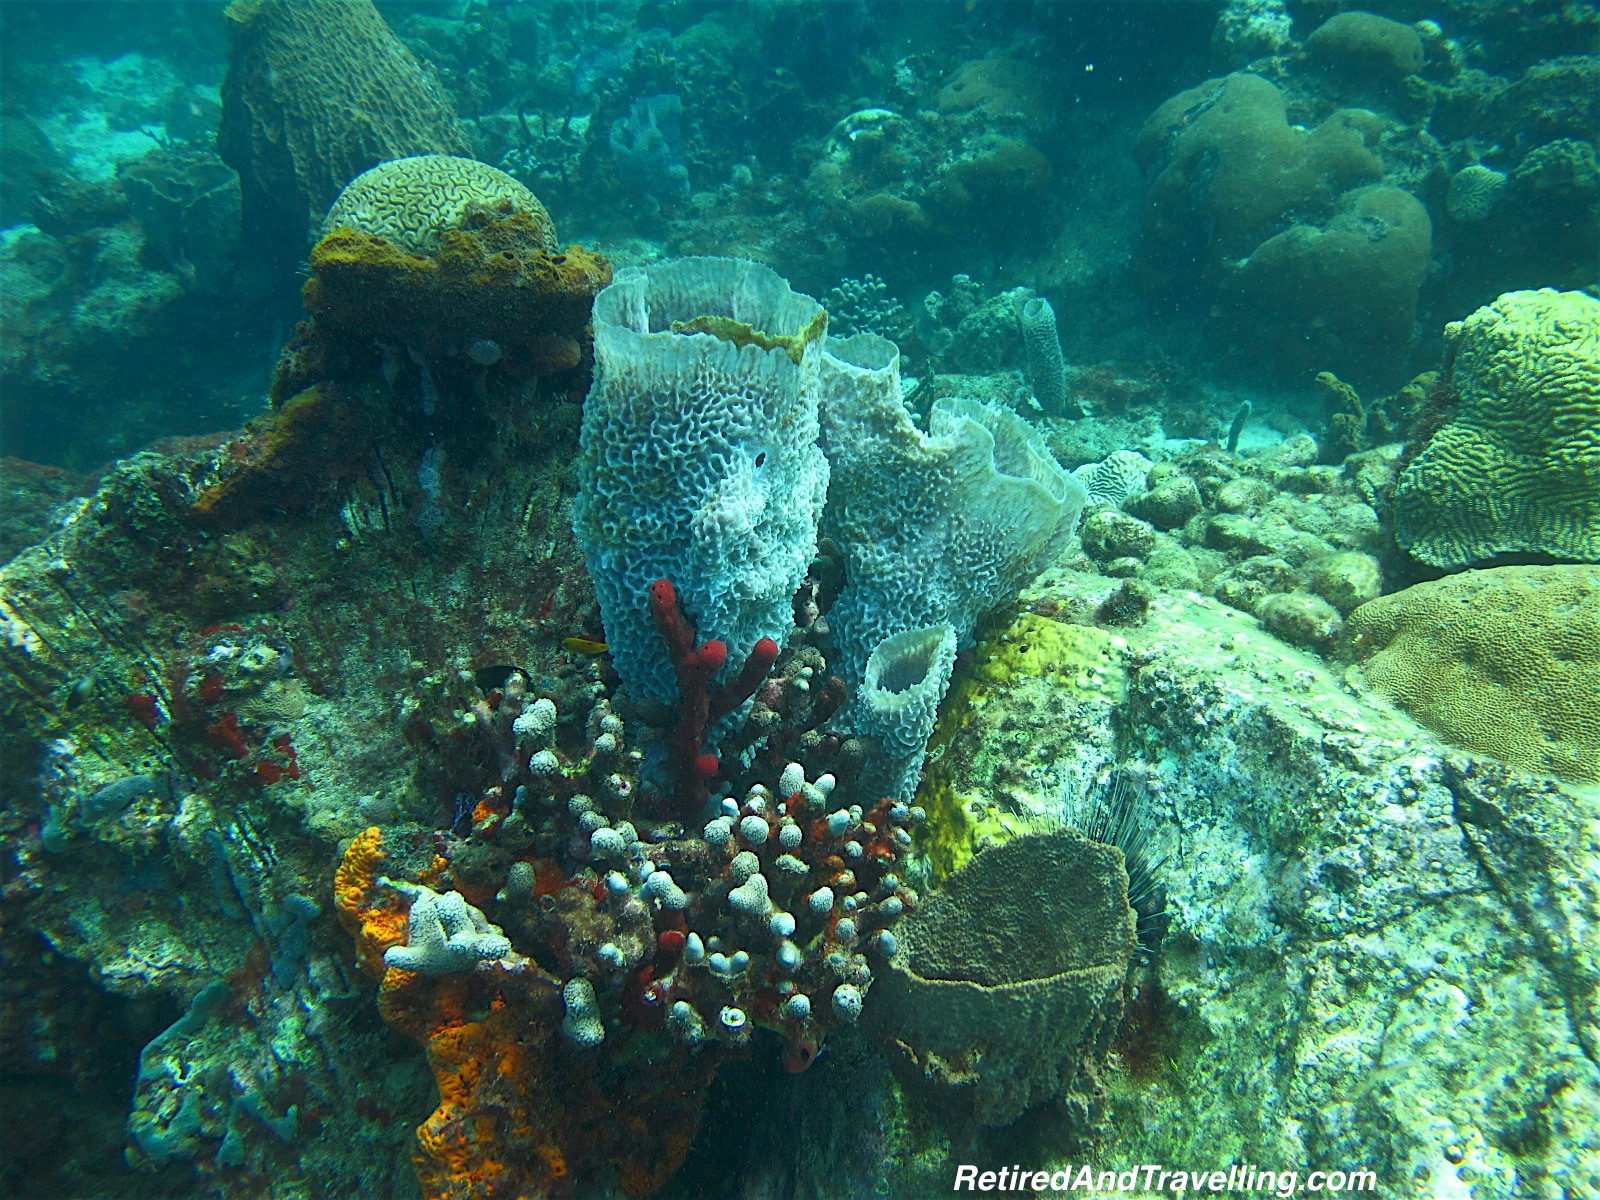 Coral and Sponges - Scuba Diving In St Lucia.jpg